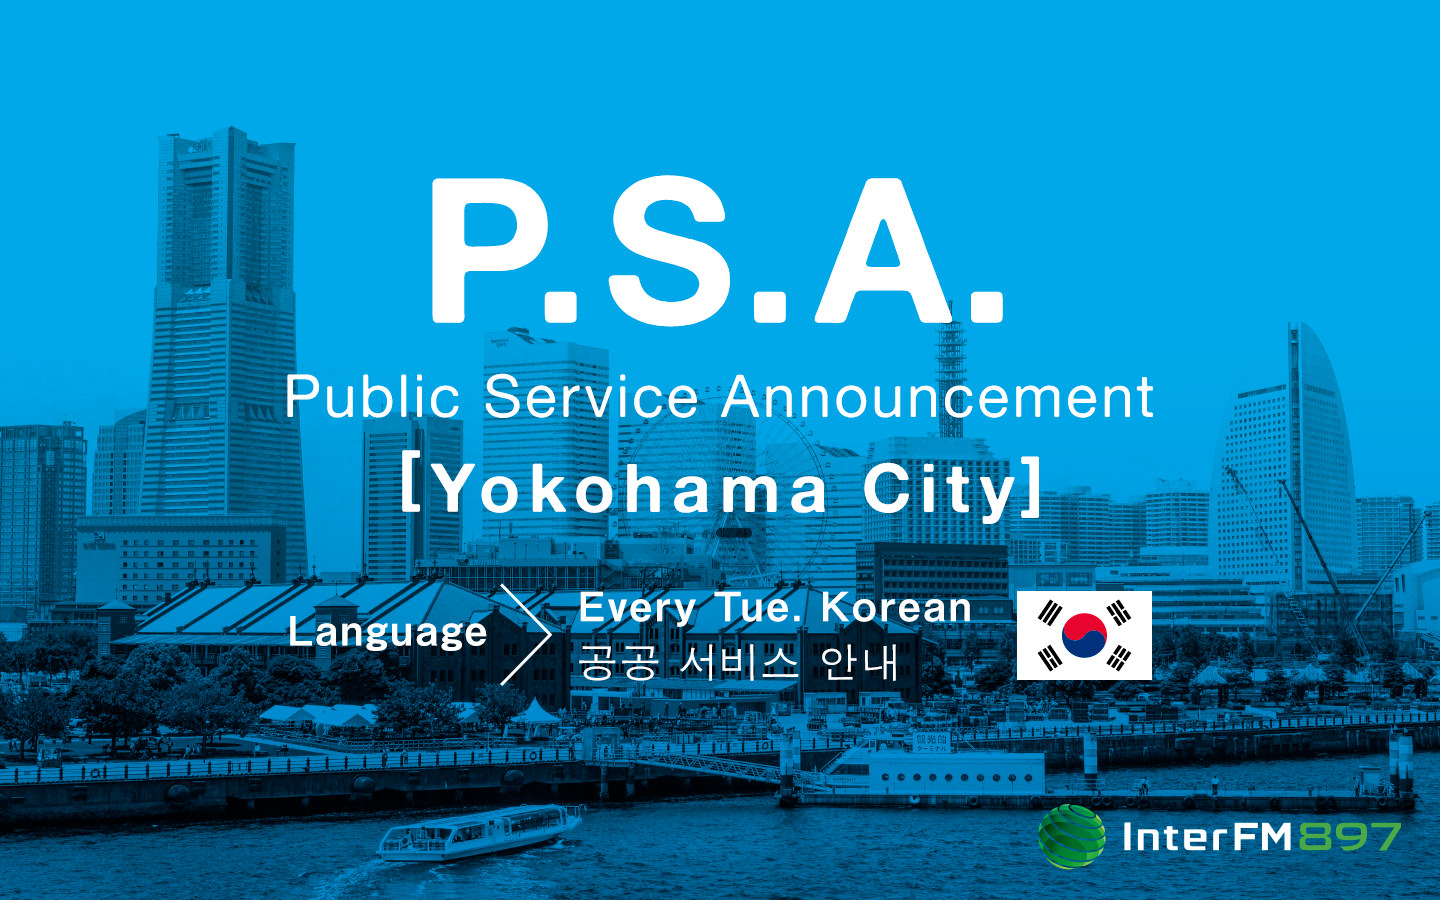 Public Service Announcement - 요코하마시(한국어)